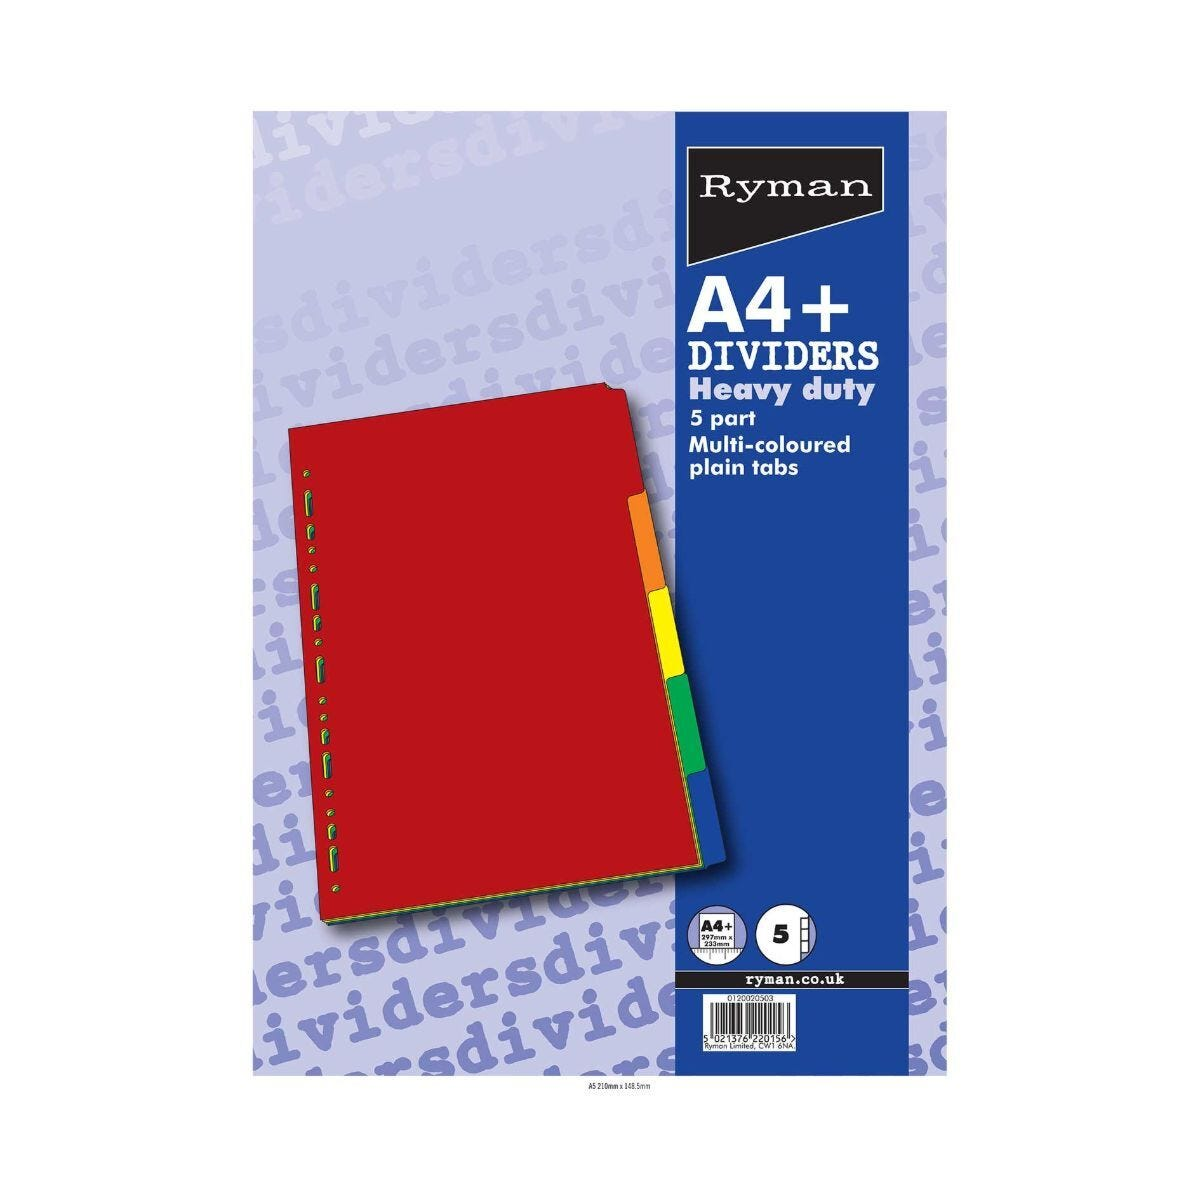 Ryman Extra Wide Dividers Heavy Duty Bright Colours 5 Part A4